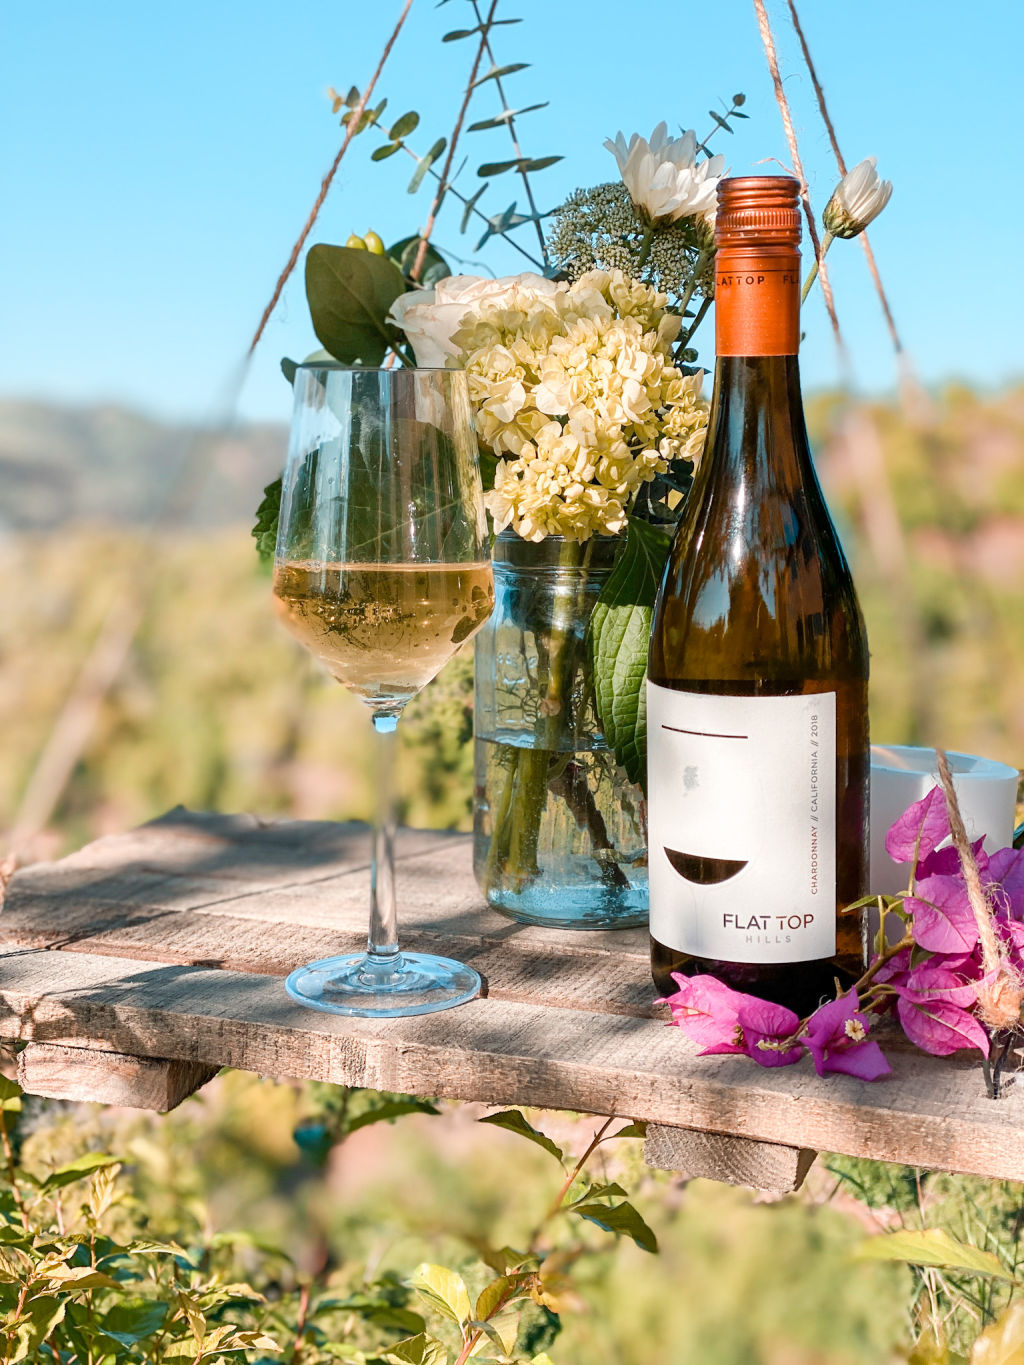 Flat Top Hills Chardonnay | Poplolly co